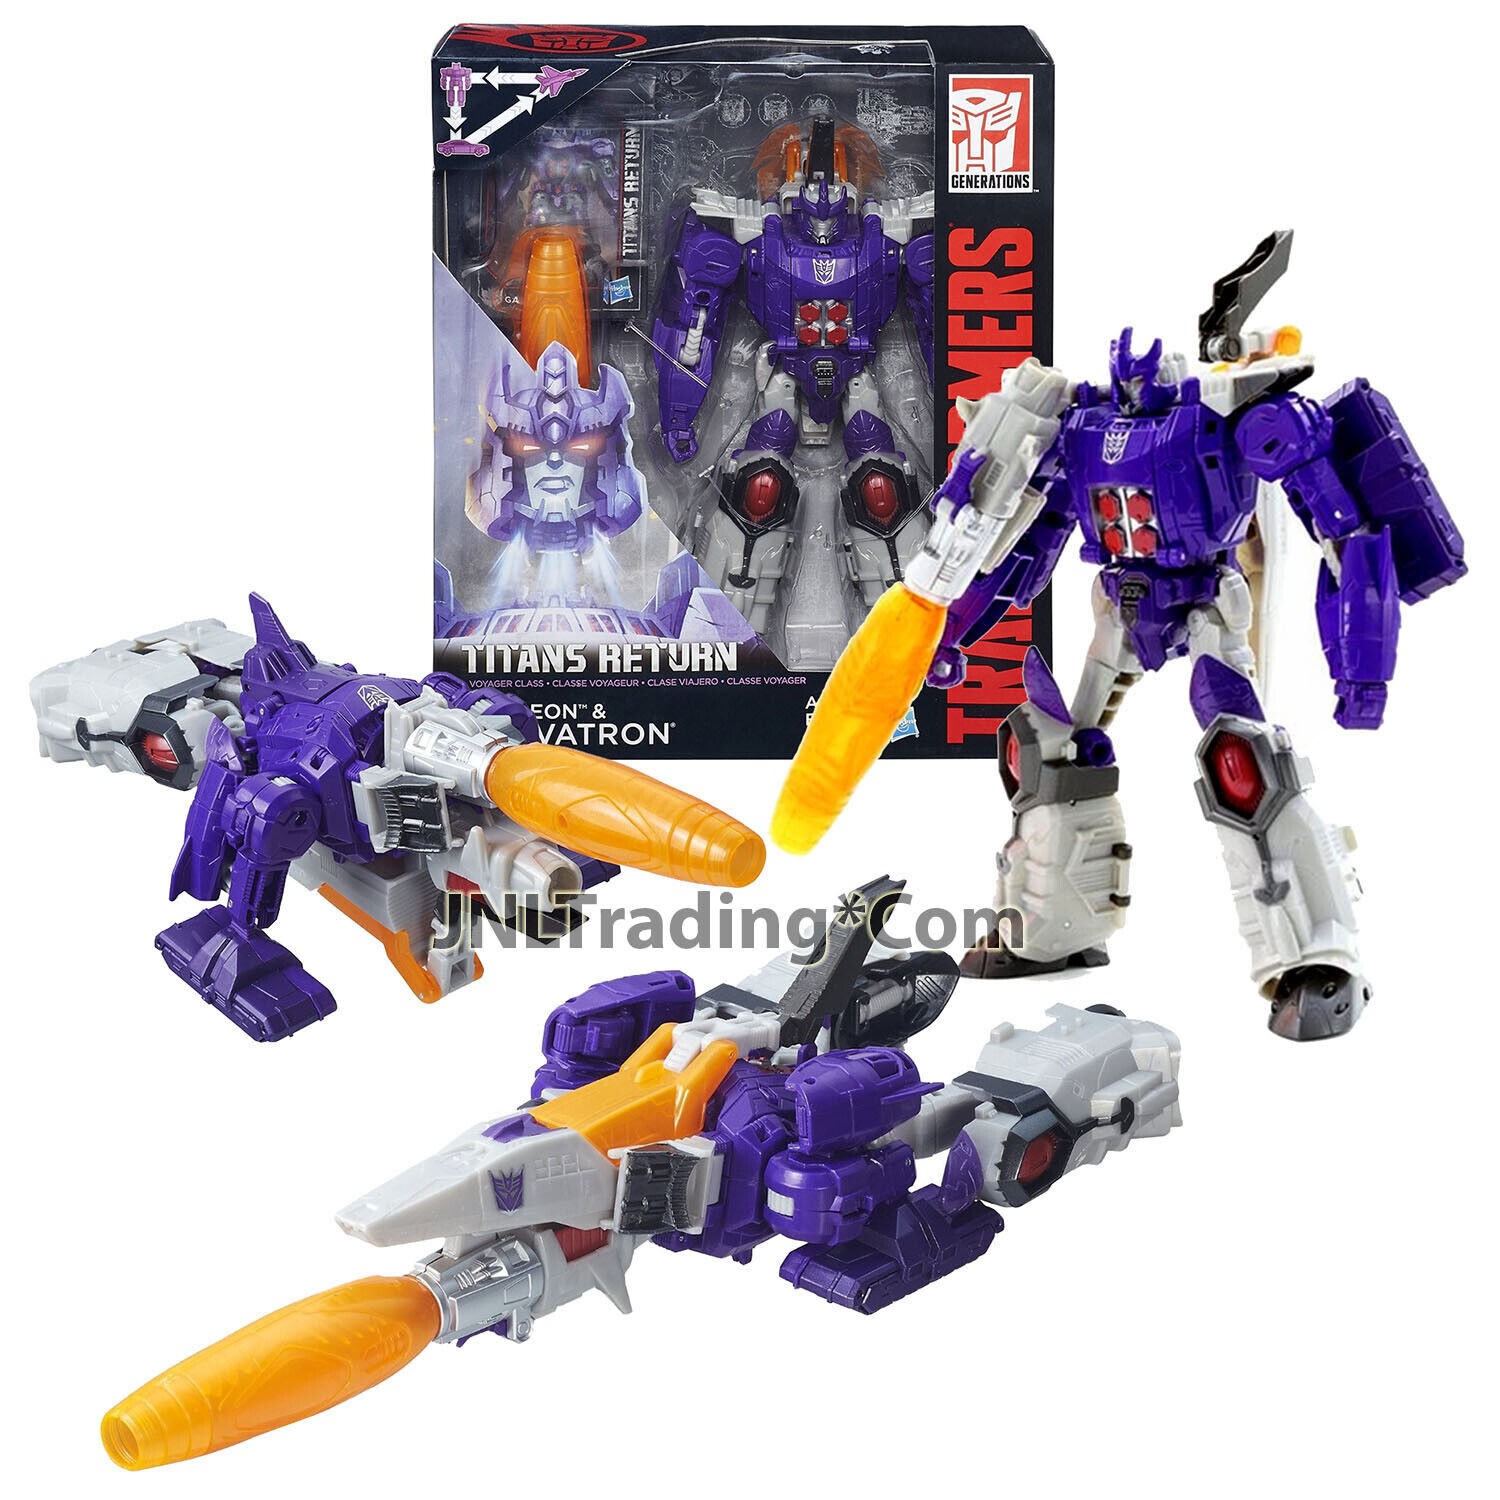 Year 2015 Hasbro Transformers Generations Titans Return Fig NUCLEON & GALVATRON